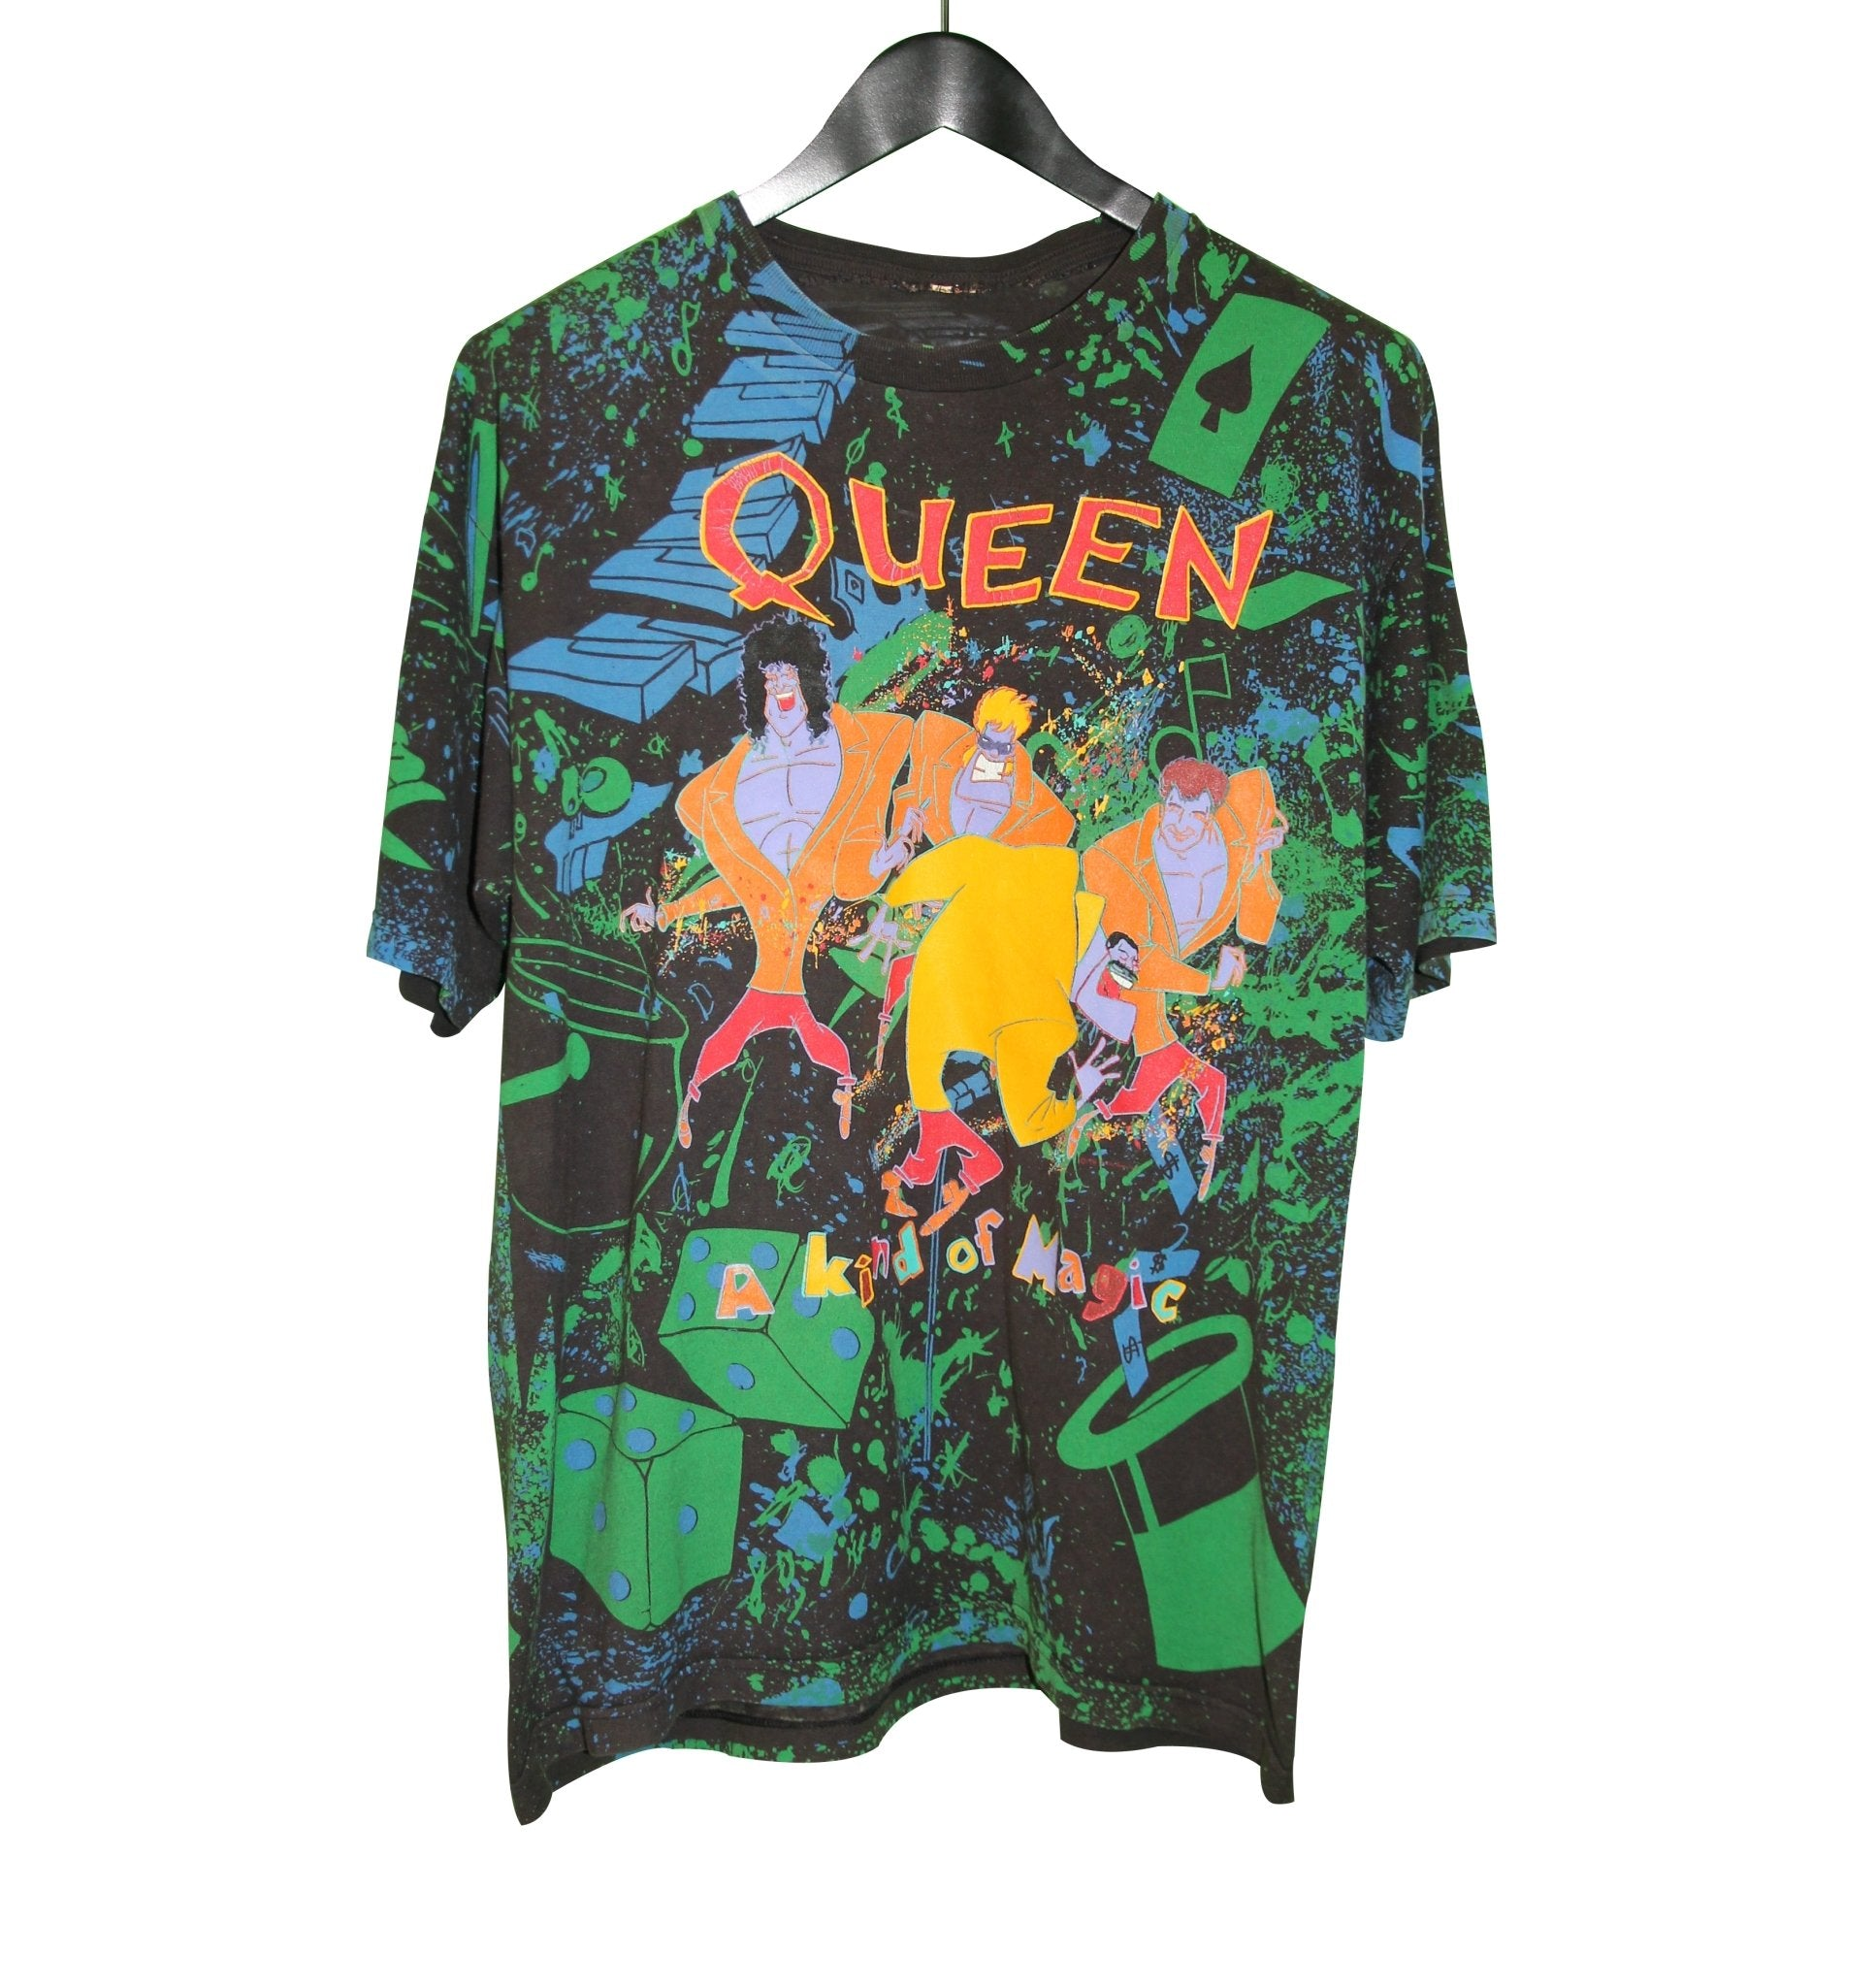 Queen 1986 A Kind Of Magic Shirt - Faded AU